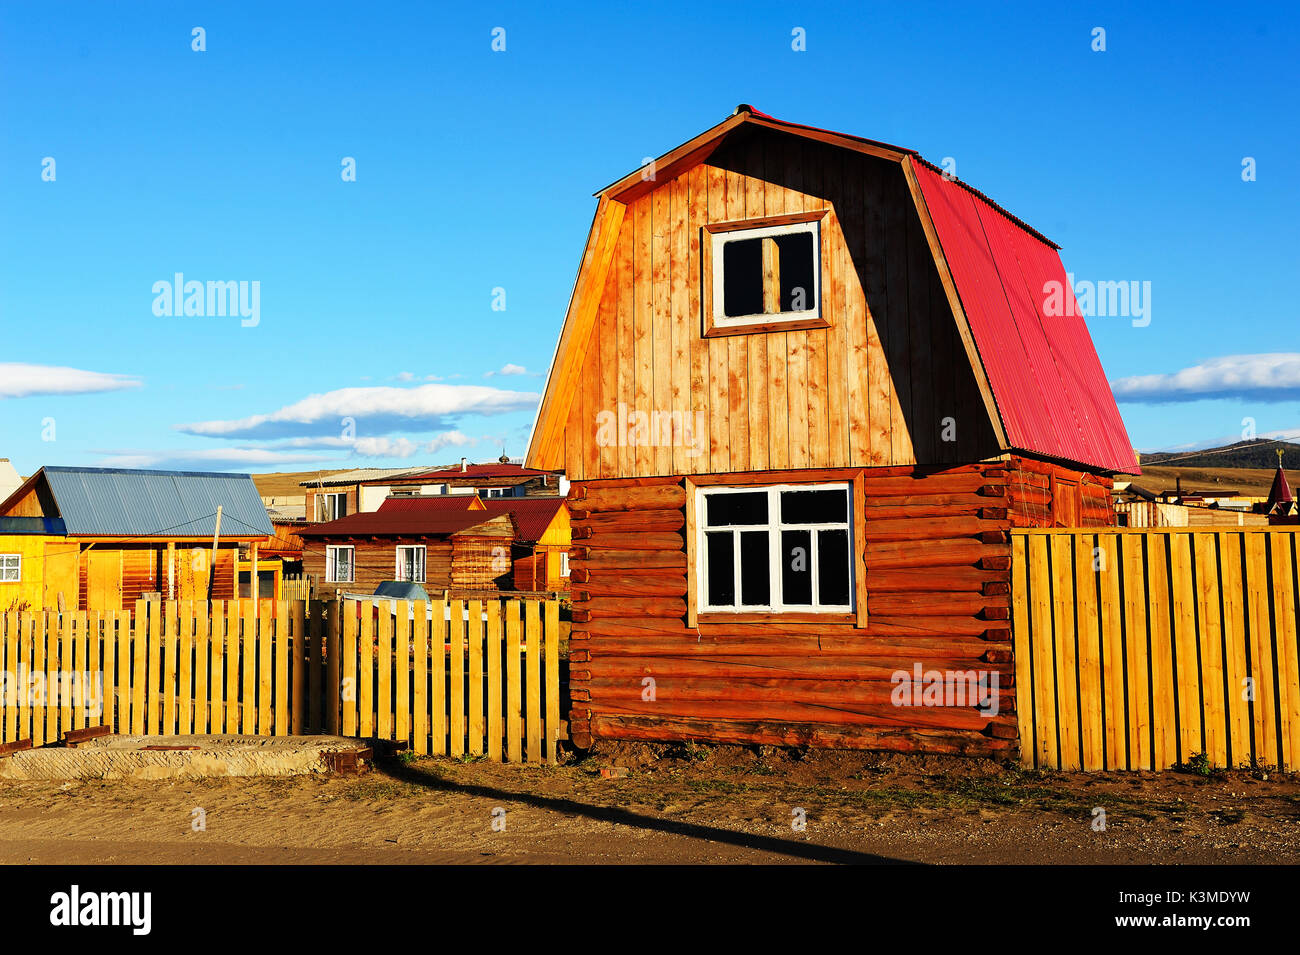 Siberian wooden houses in olkhon island,Siberia,Russia. - Stock Image